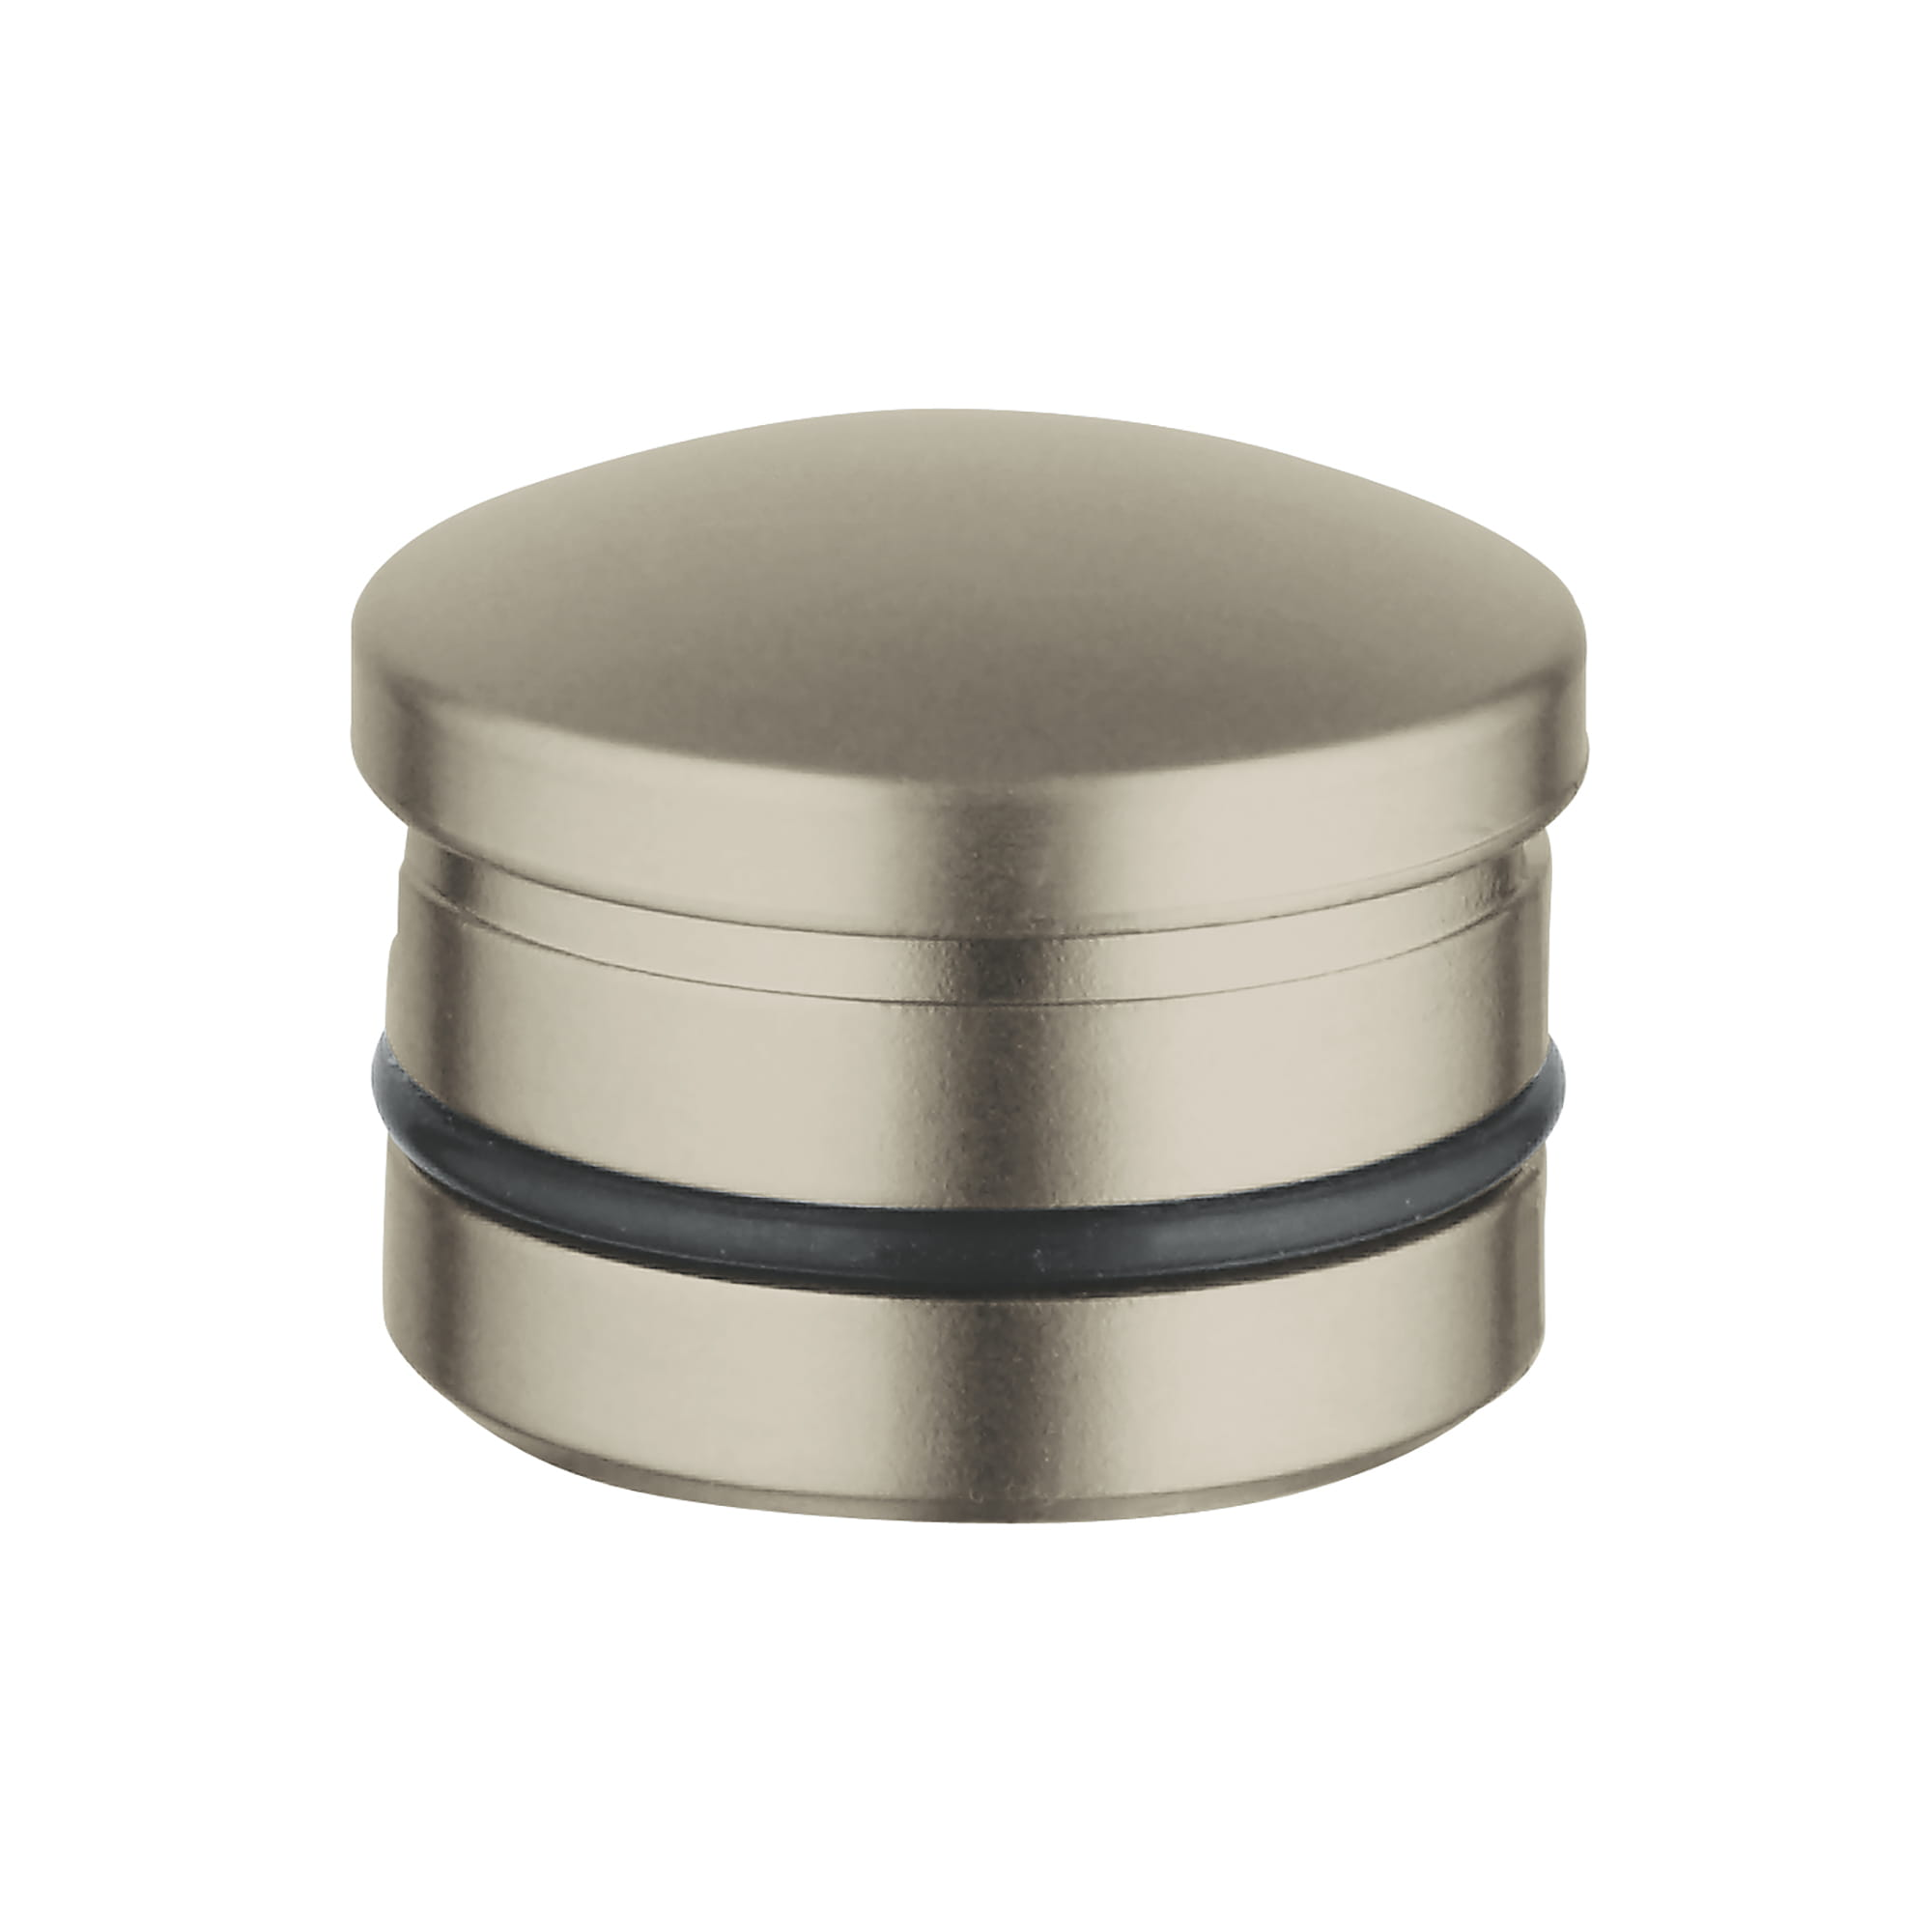 Cover Cap GROHE BRUSHED NICKEL